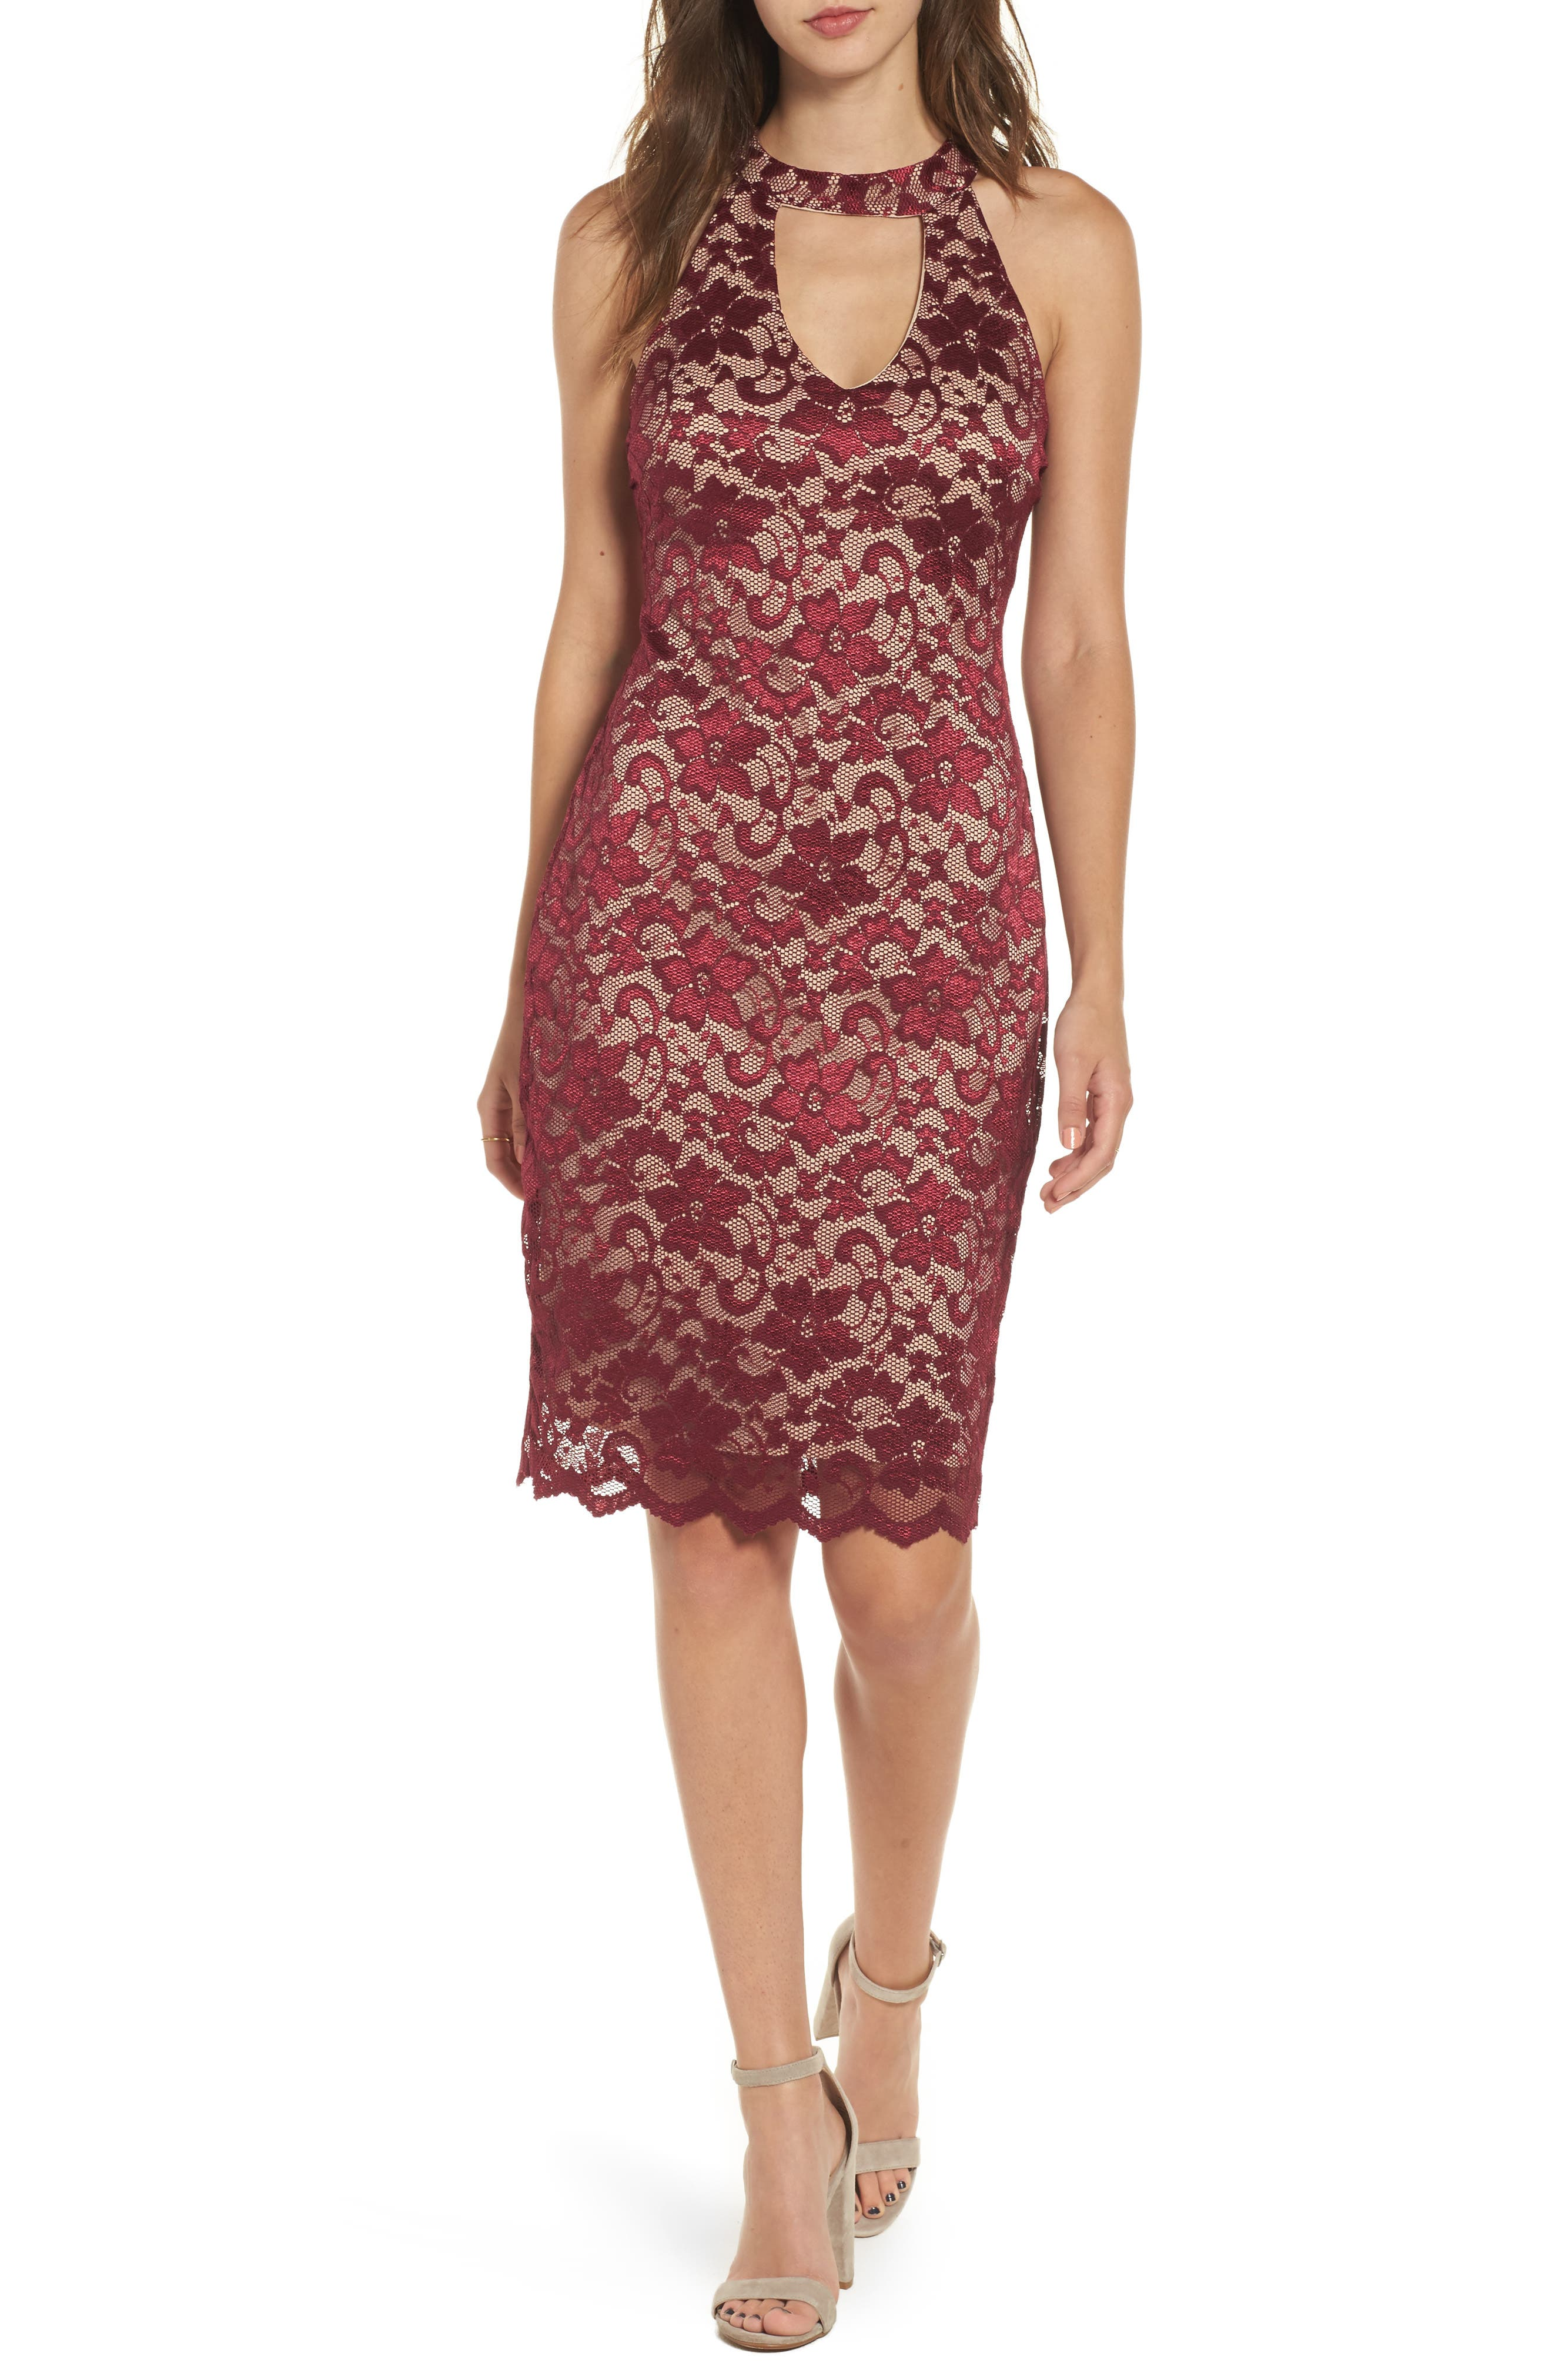 Love Nickie Lew Lace Choker Body Con Dress,                             Main thumbnail 1, color,                             Wine/ Nude